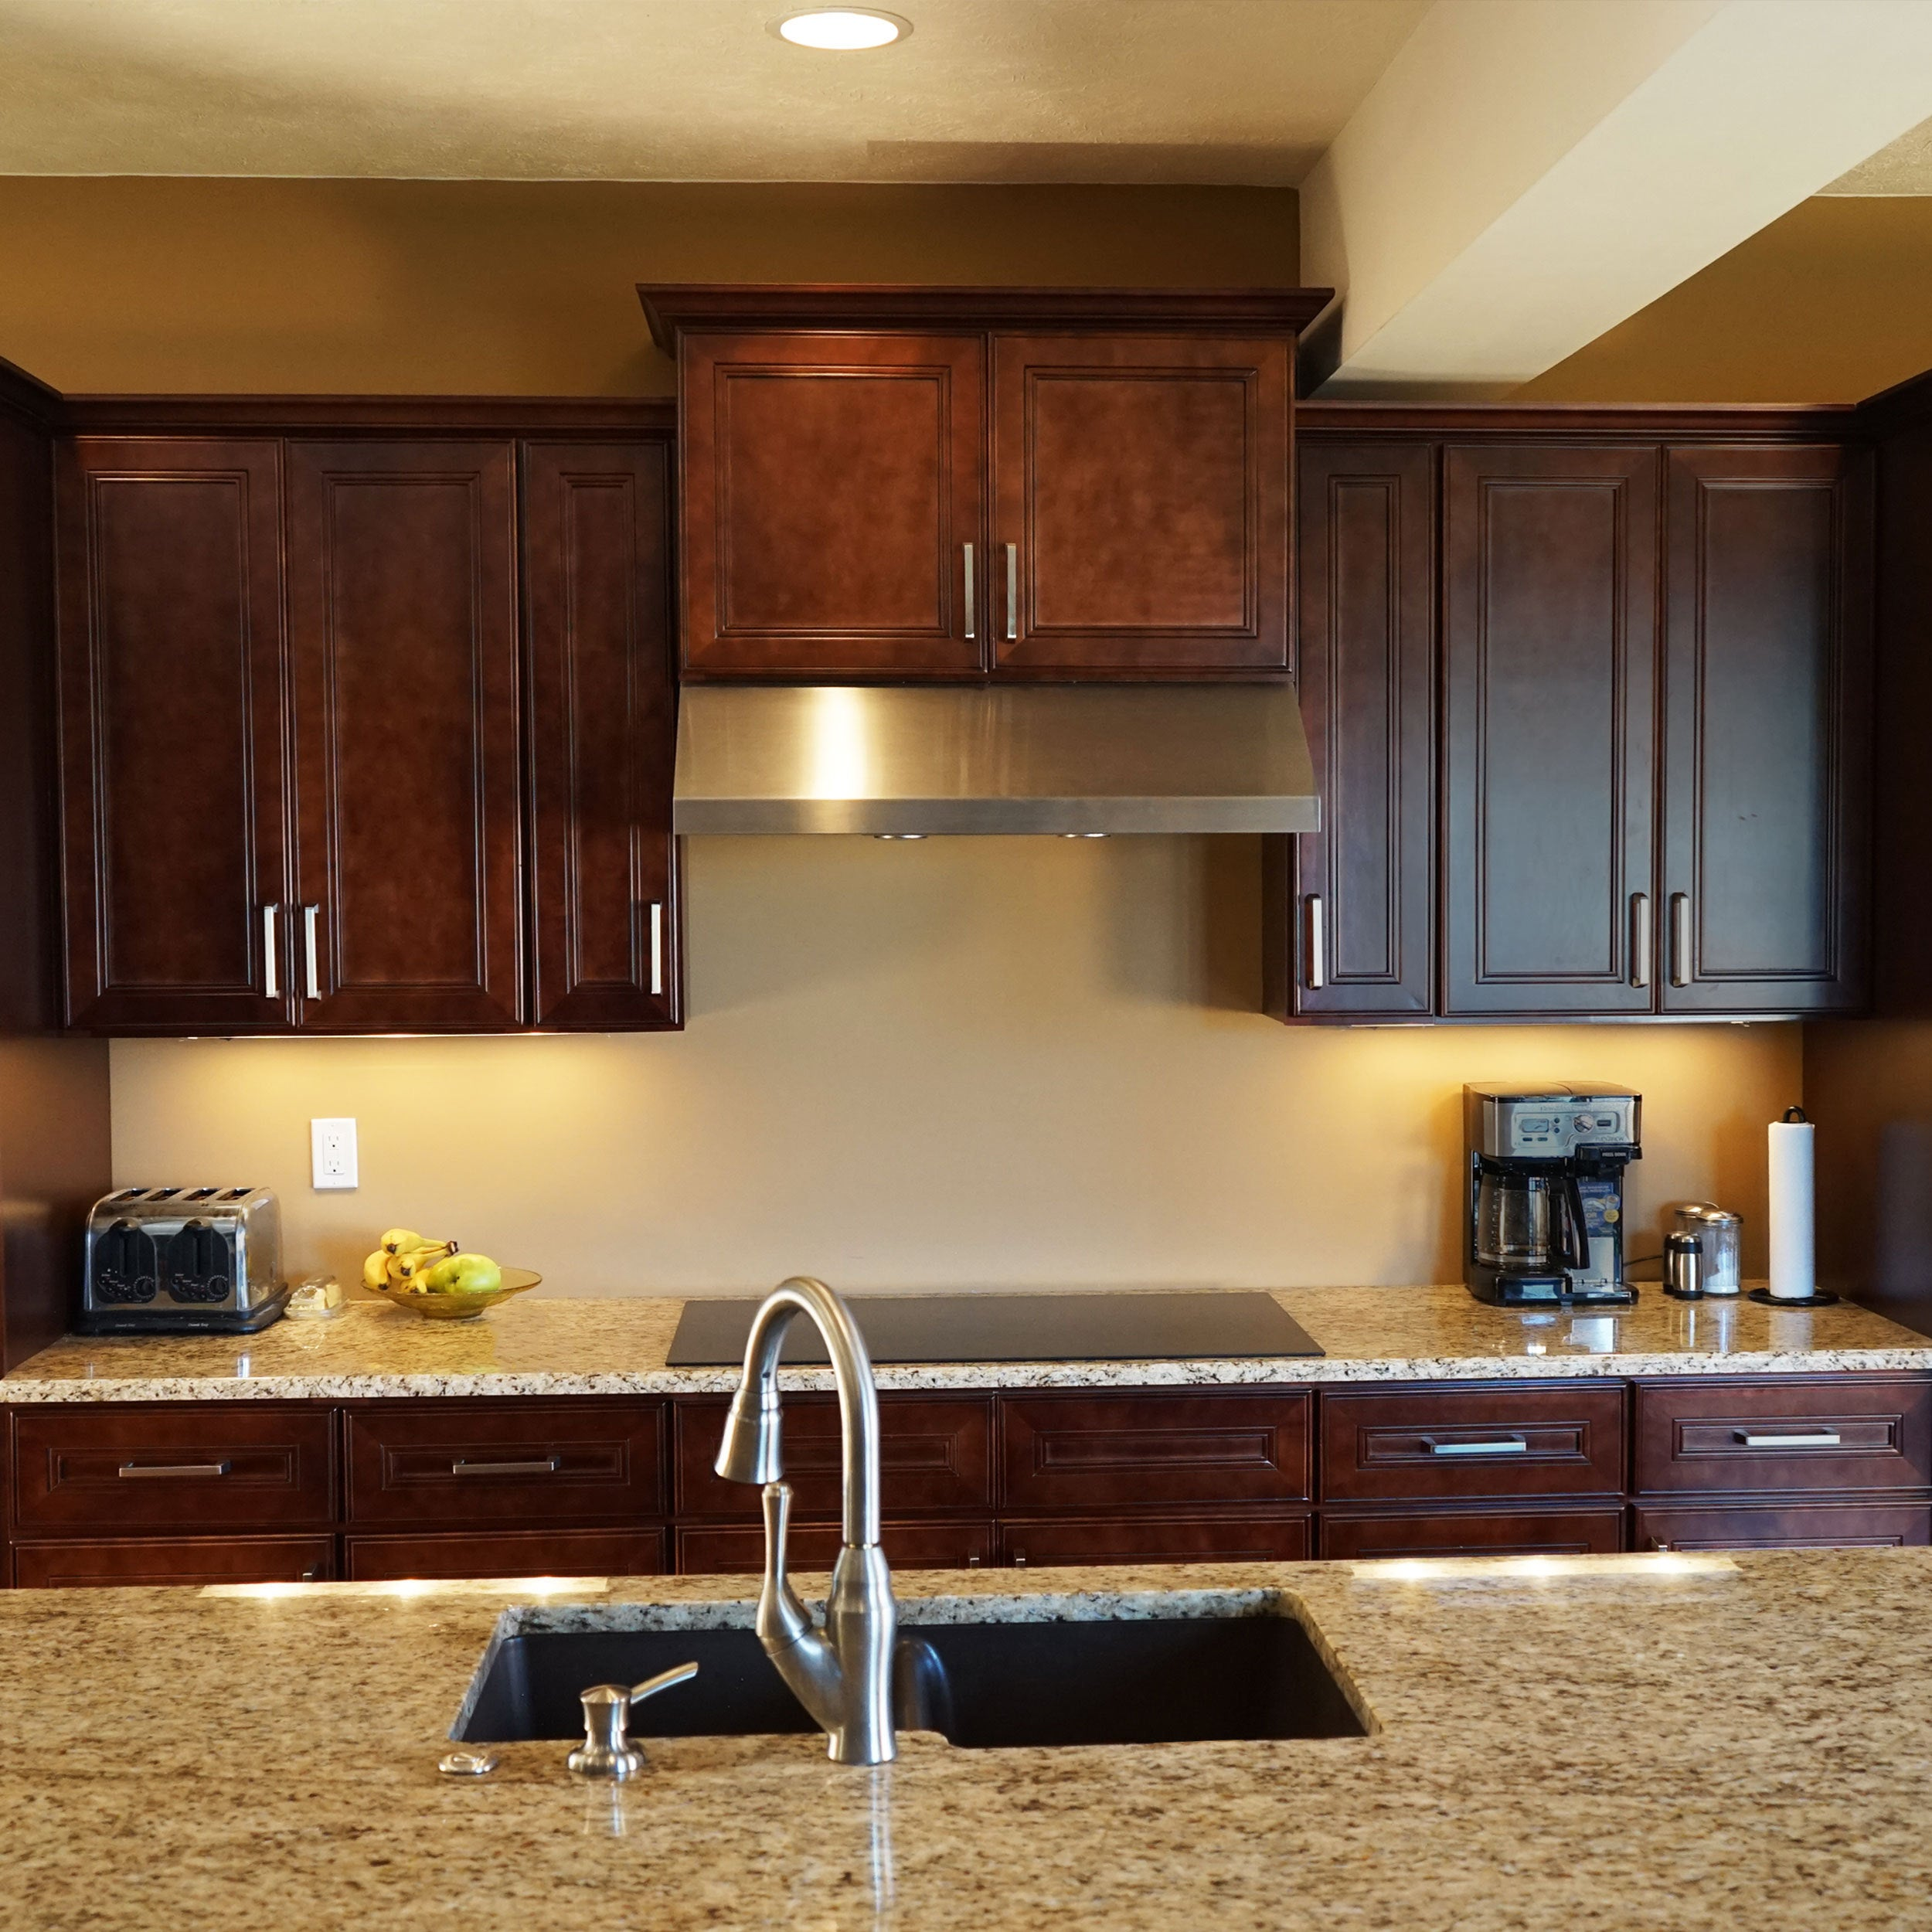 Everyday Cabinets 27 Inch Cherry Mahogany Brown Leo Saddle Double Door Wall Kitchen Cabinet Overstock 12314995